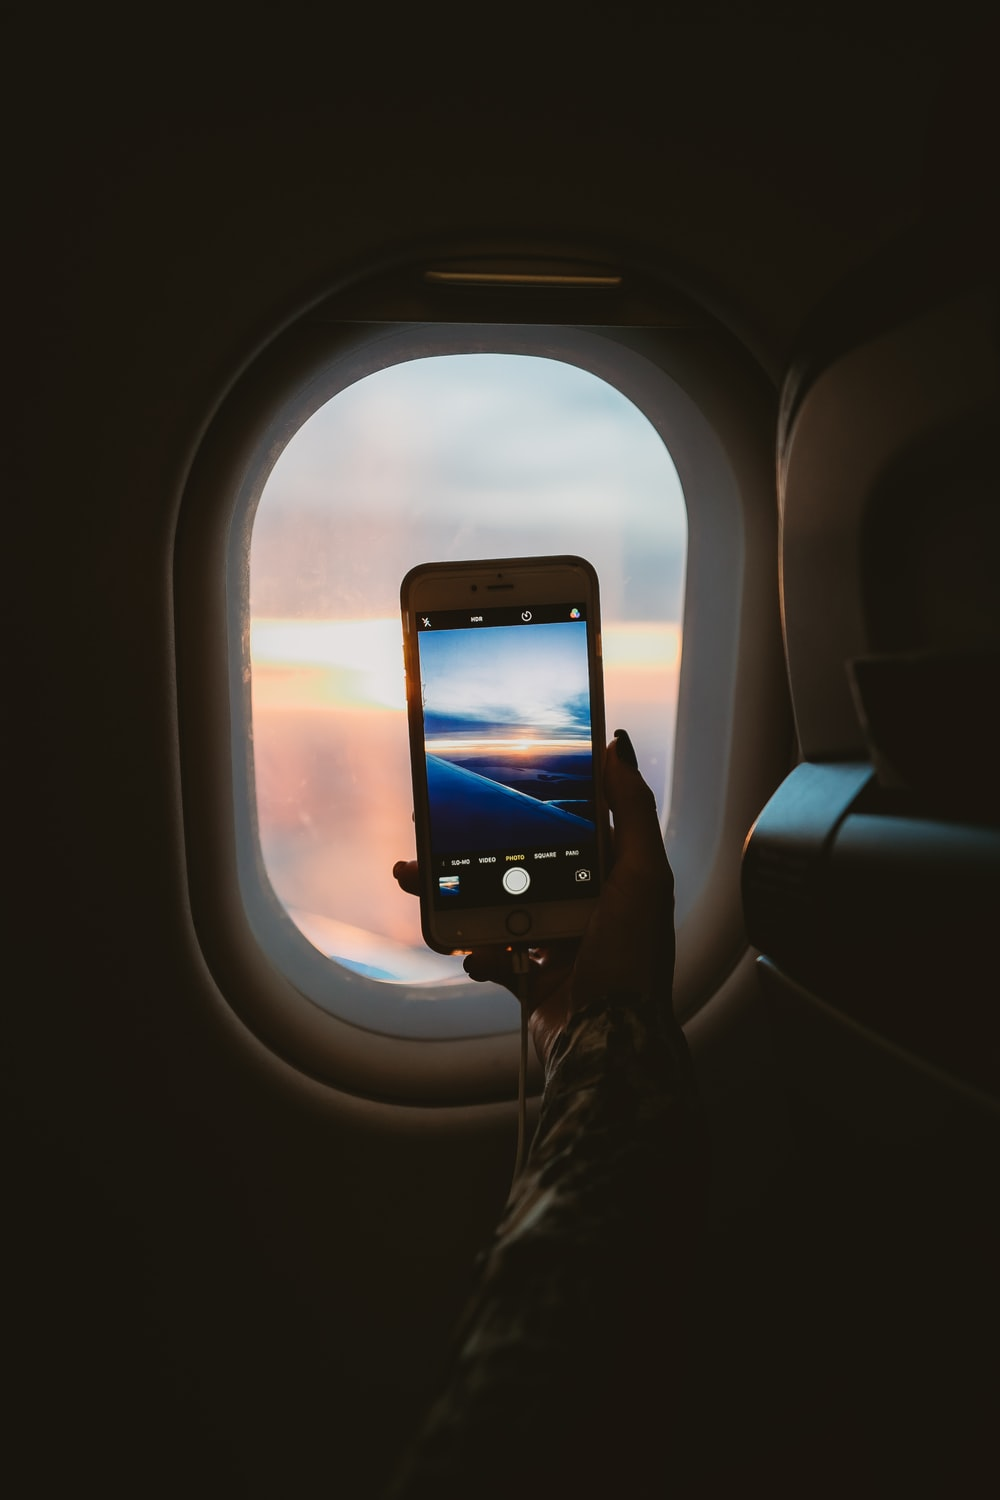 person taking picture of window plane